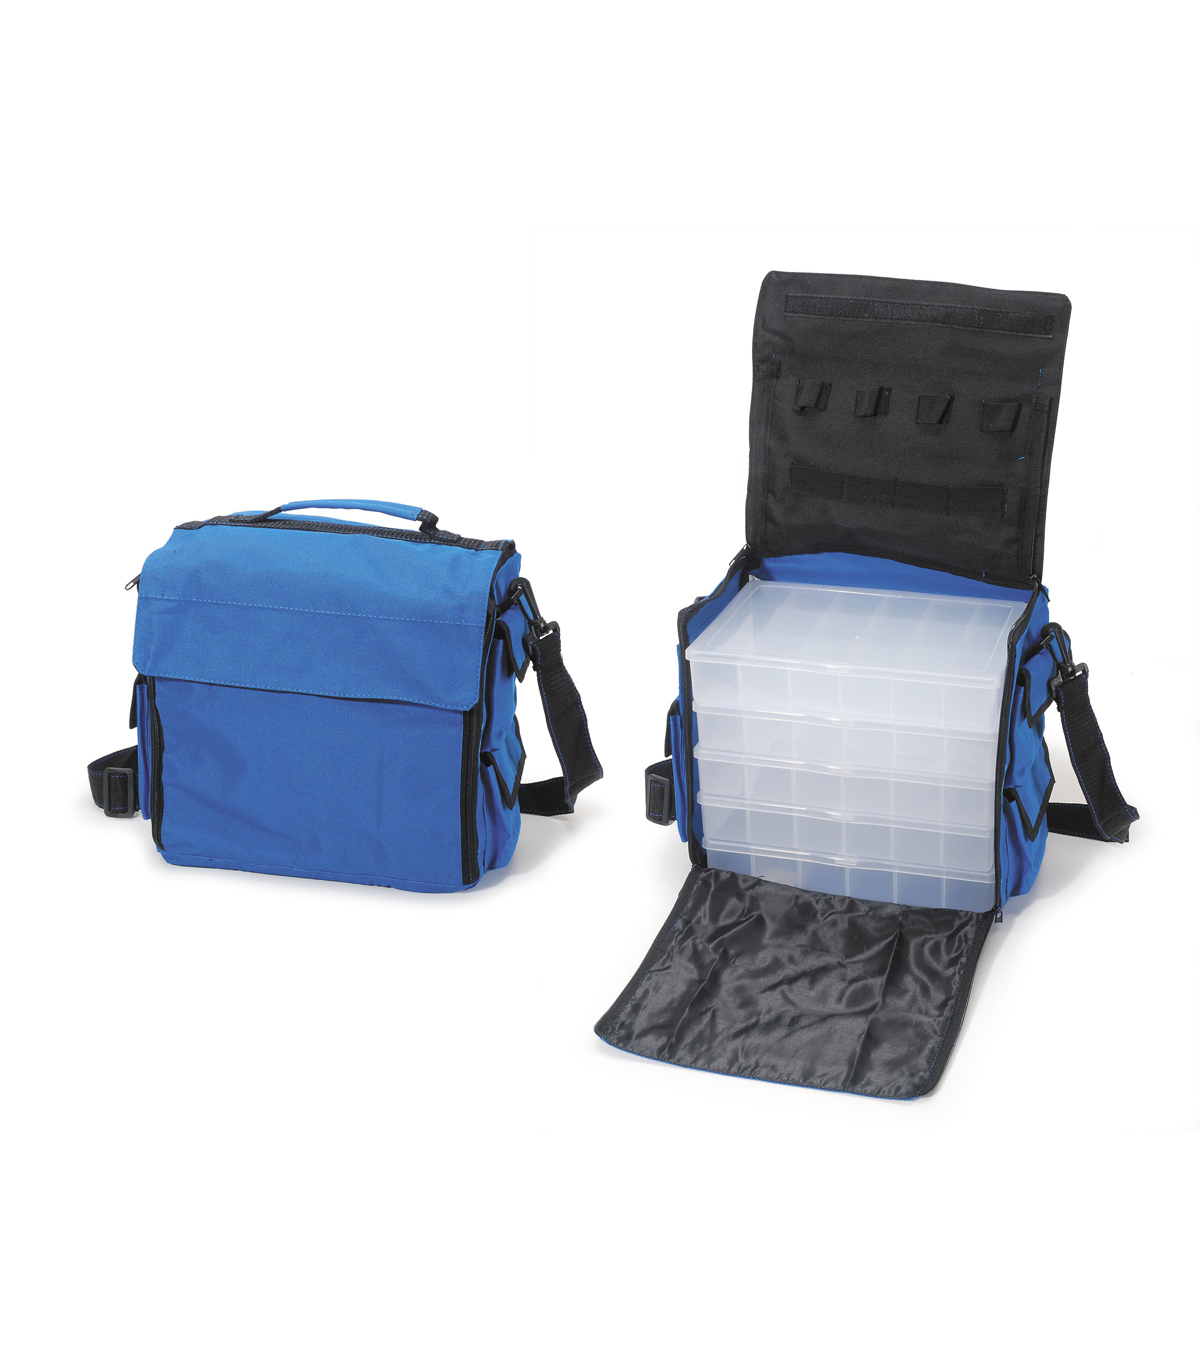 Nylon Bag Assorted with 5 Organizers